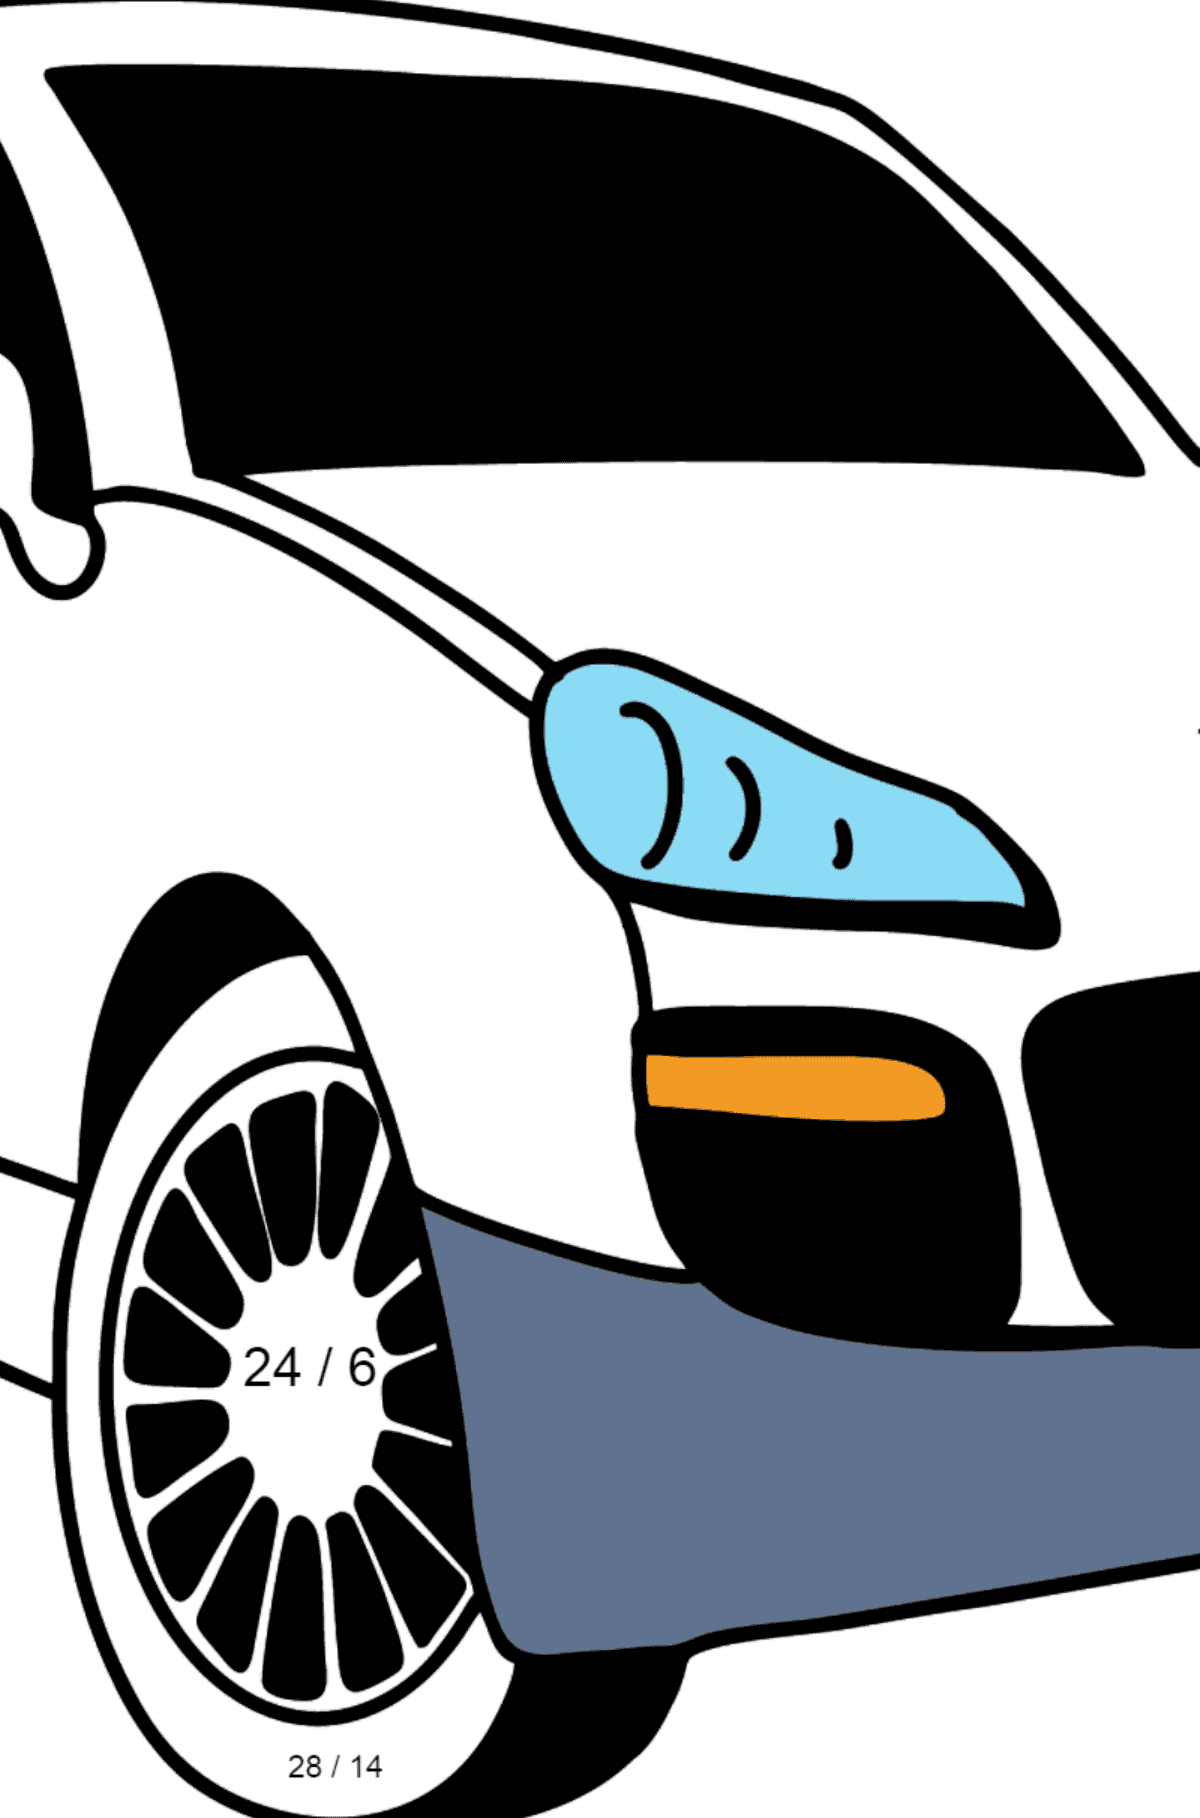 Porsche Cayenne Crossover coloring page - Math Coloring - Division for Kids